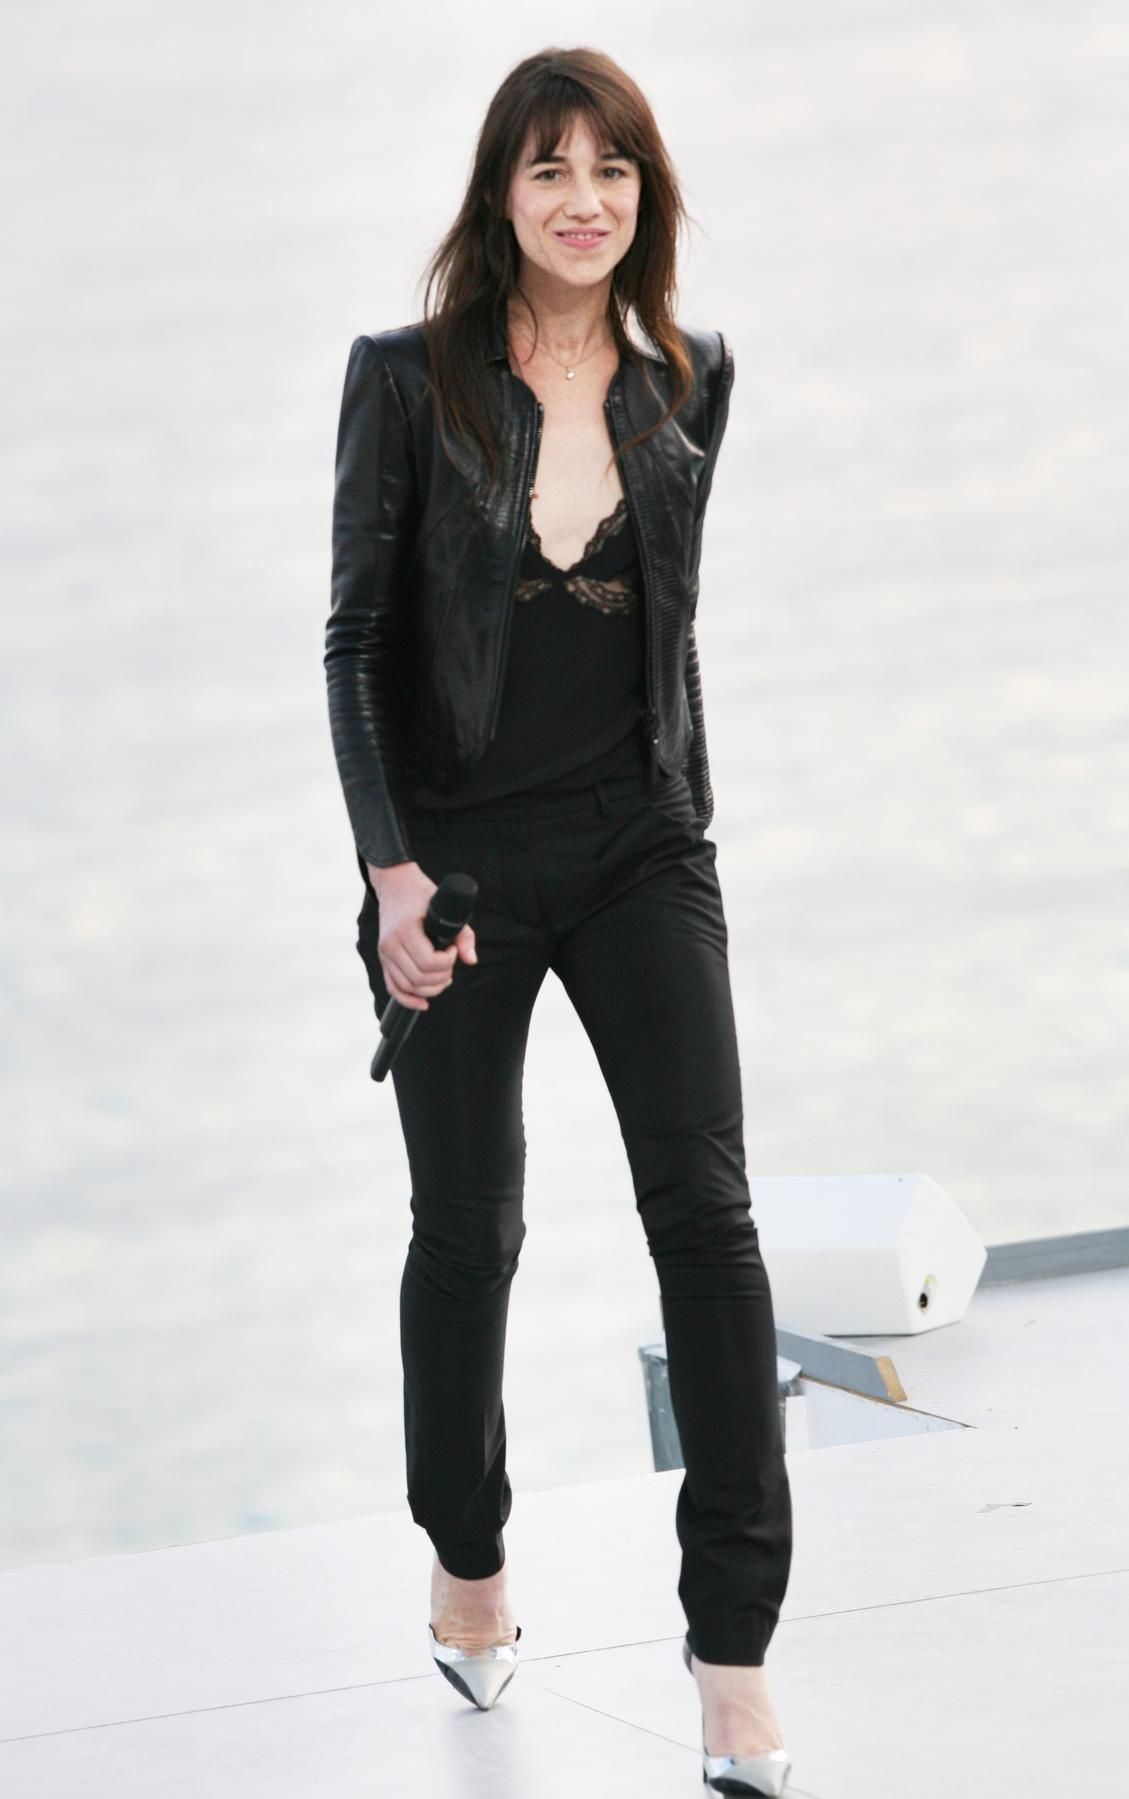 The Charlotte Gainsbourg Look Book - sleek black jeans, cami & leather jacket, interesting shoes.